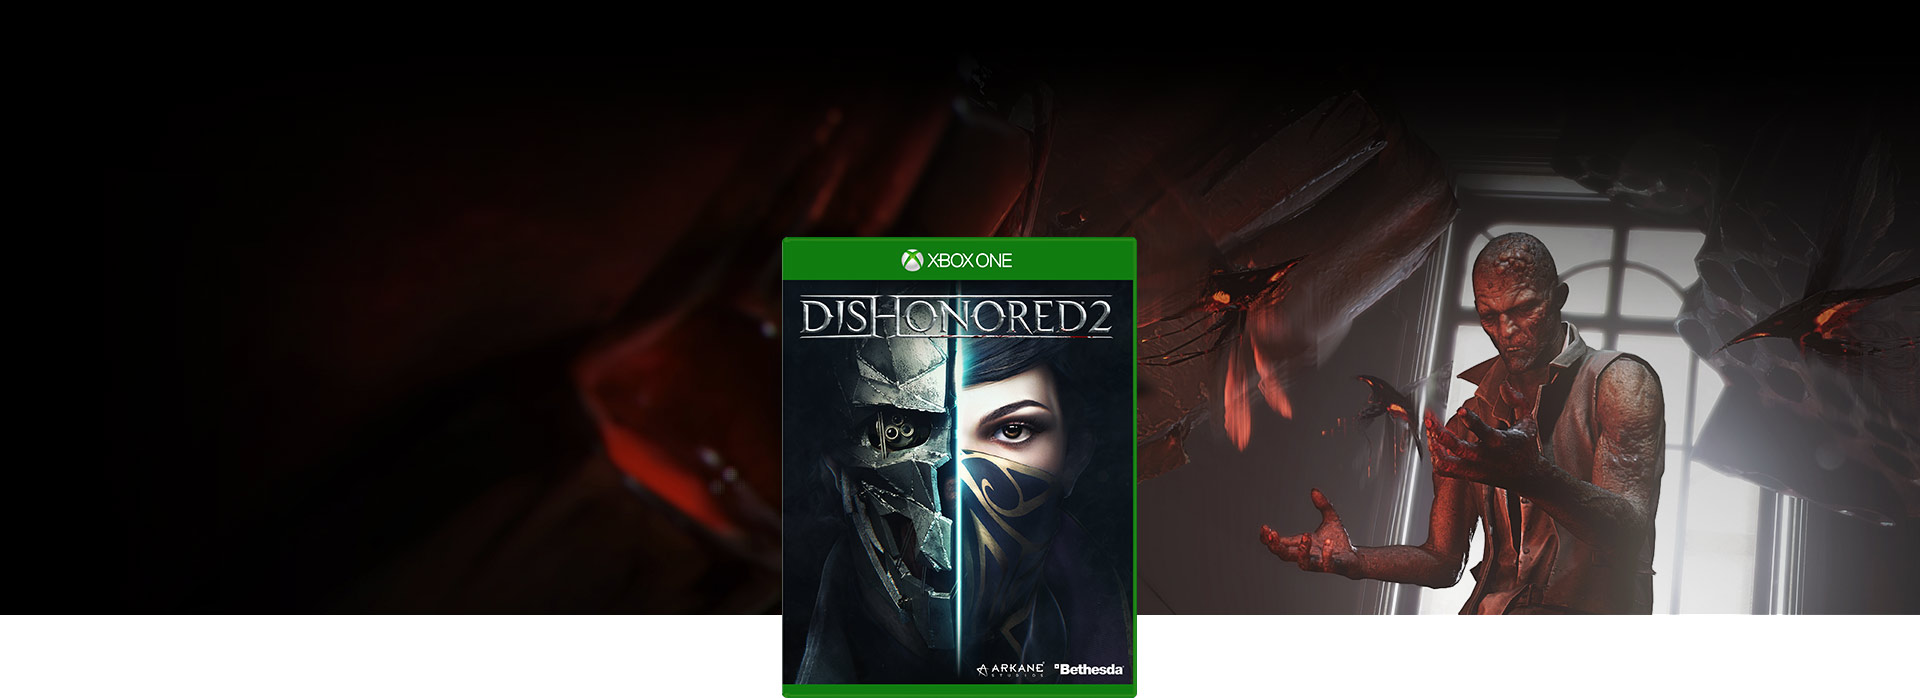 Dishonored 2 boxshot